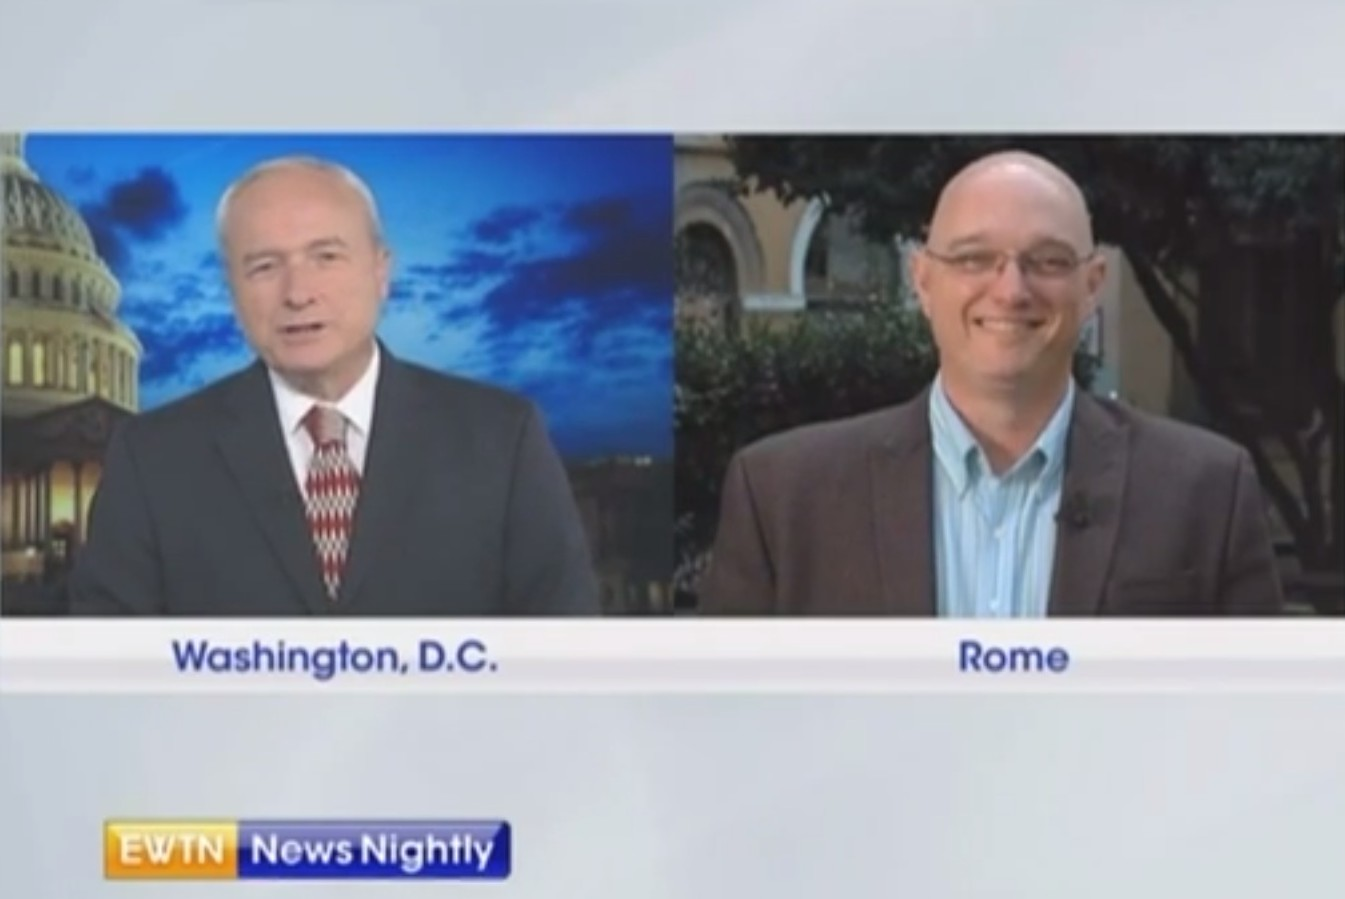 Video: EWTN appearance for Catholic Match coverage of the Synod